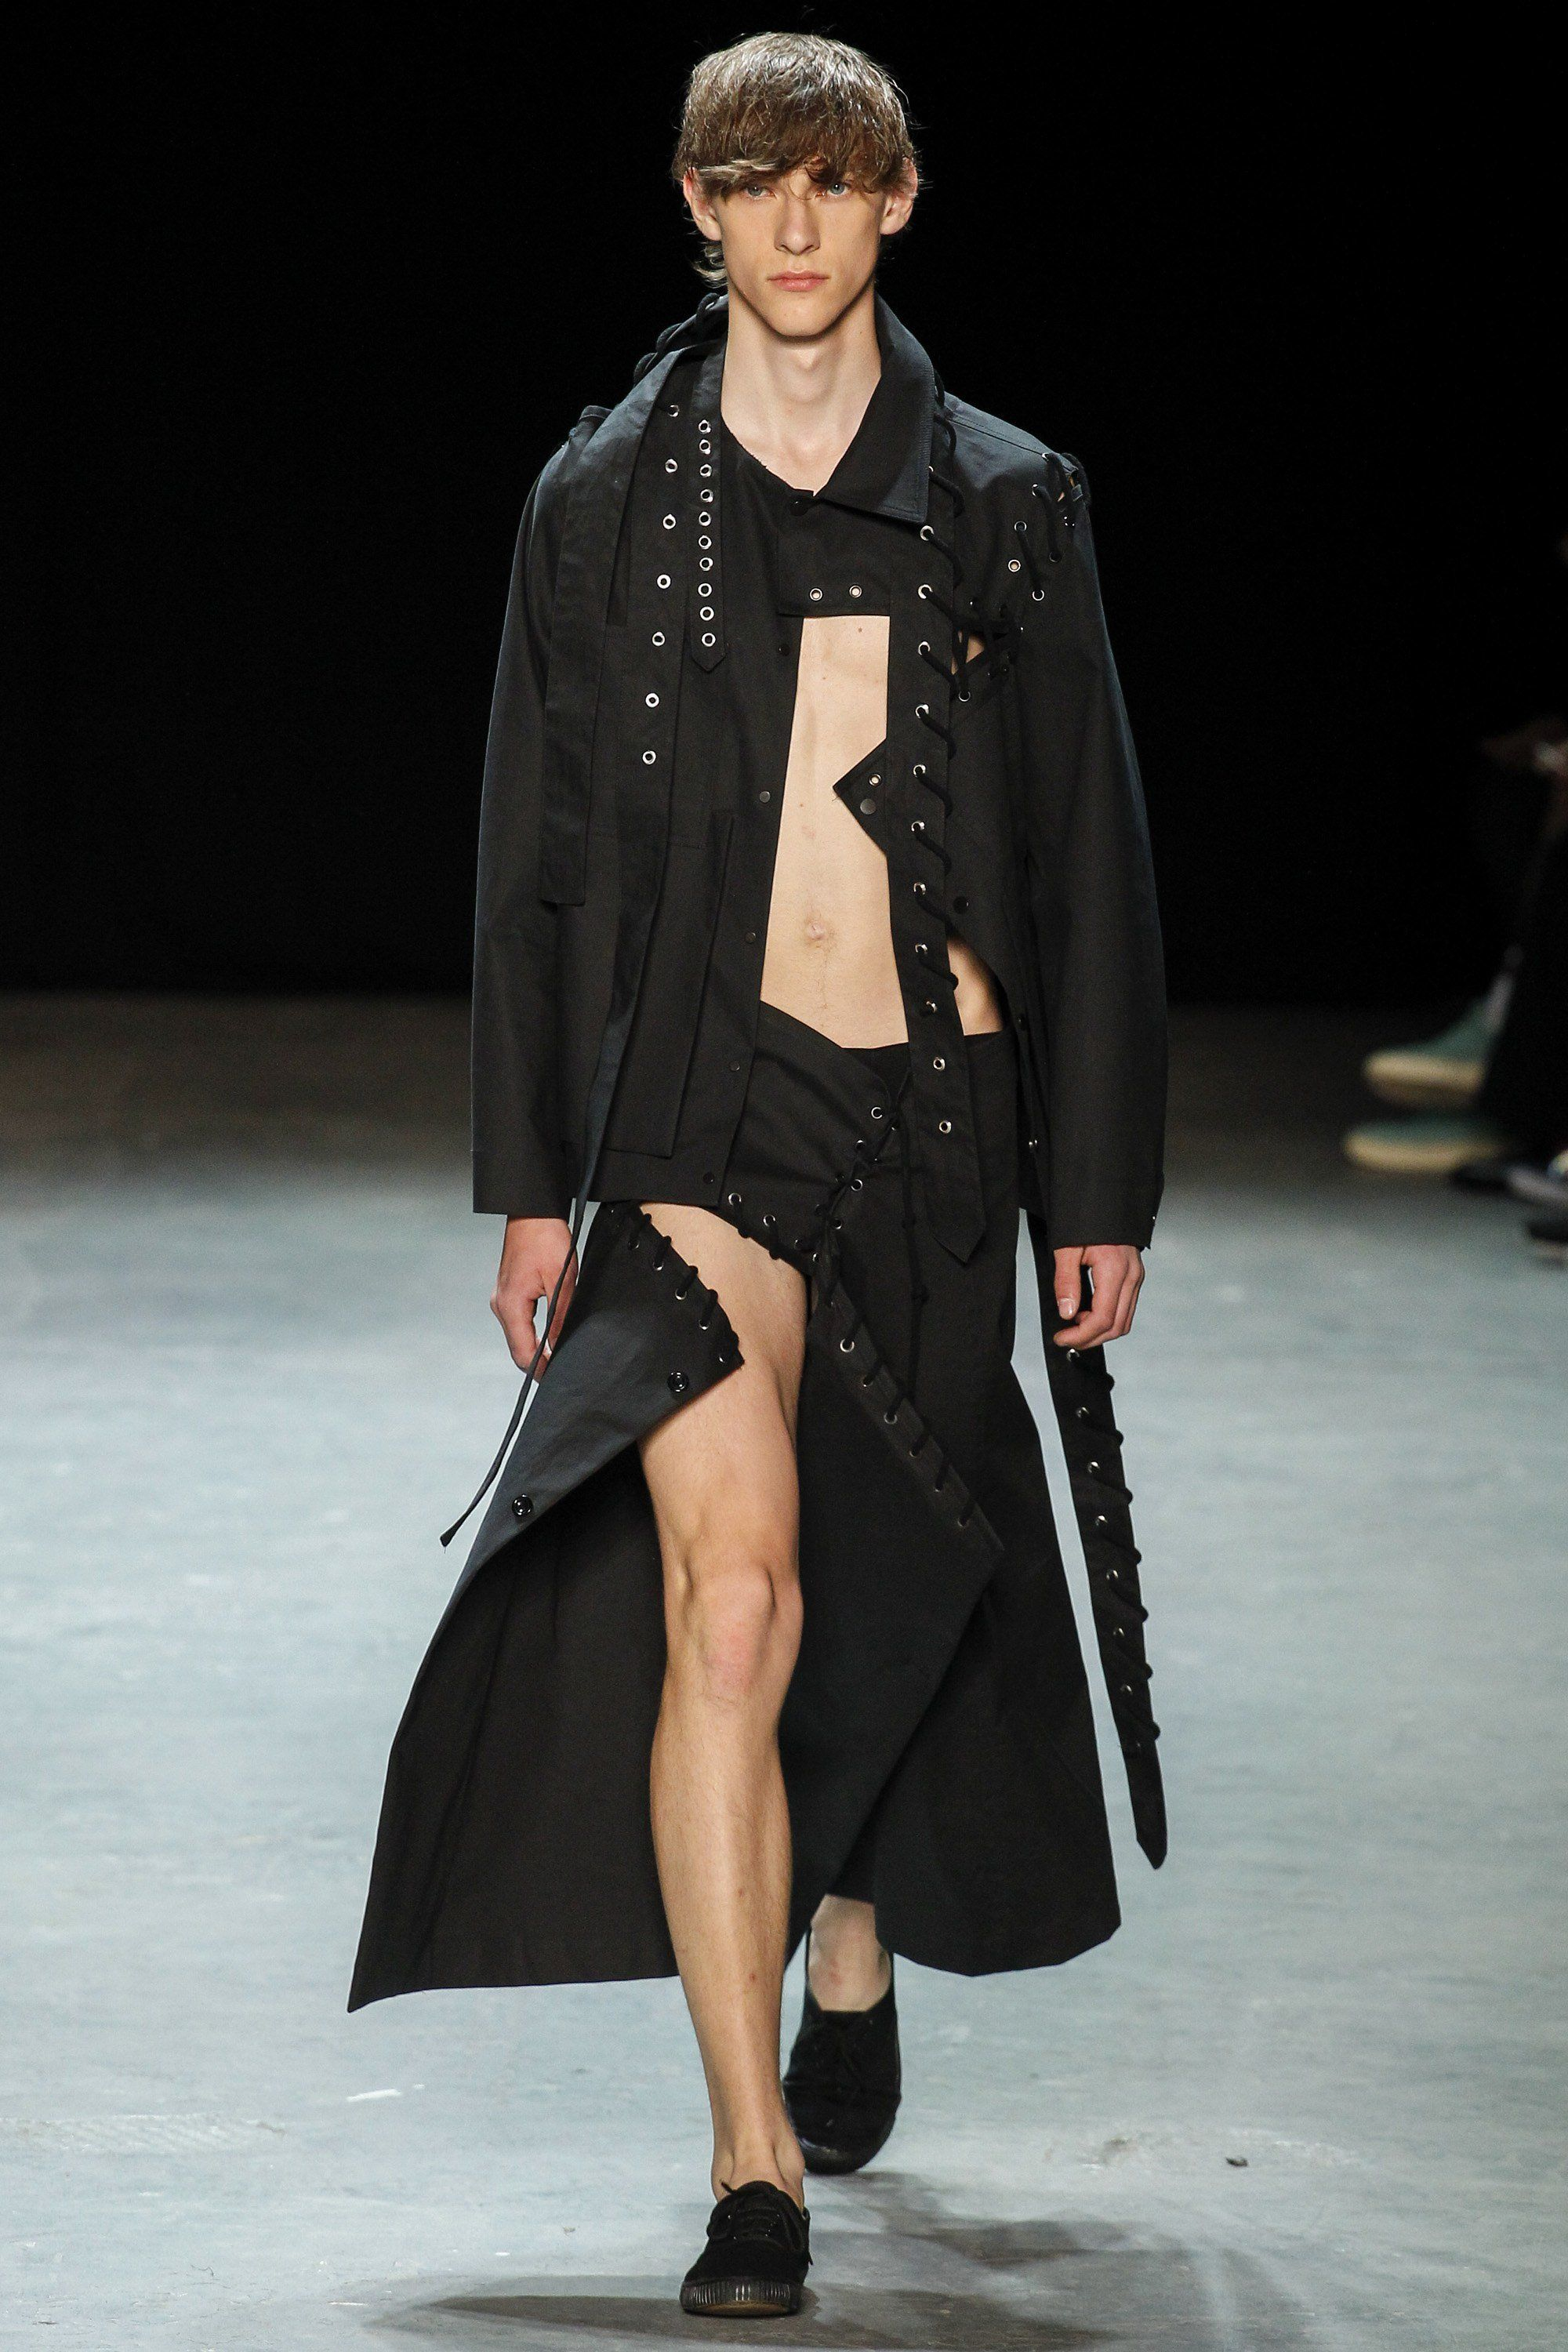 The top menswear trends of spring spring hot boys and boys